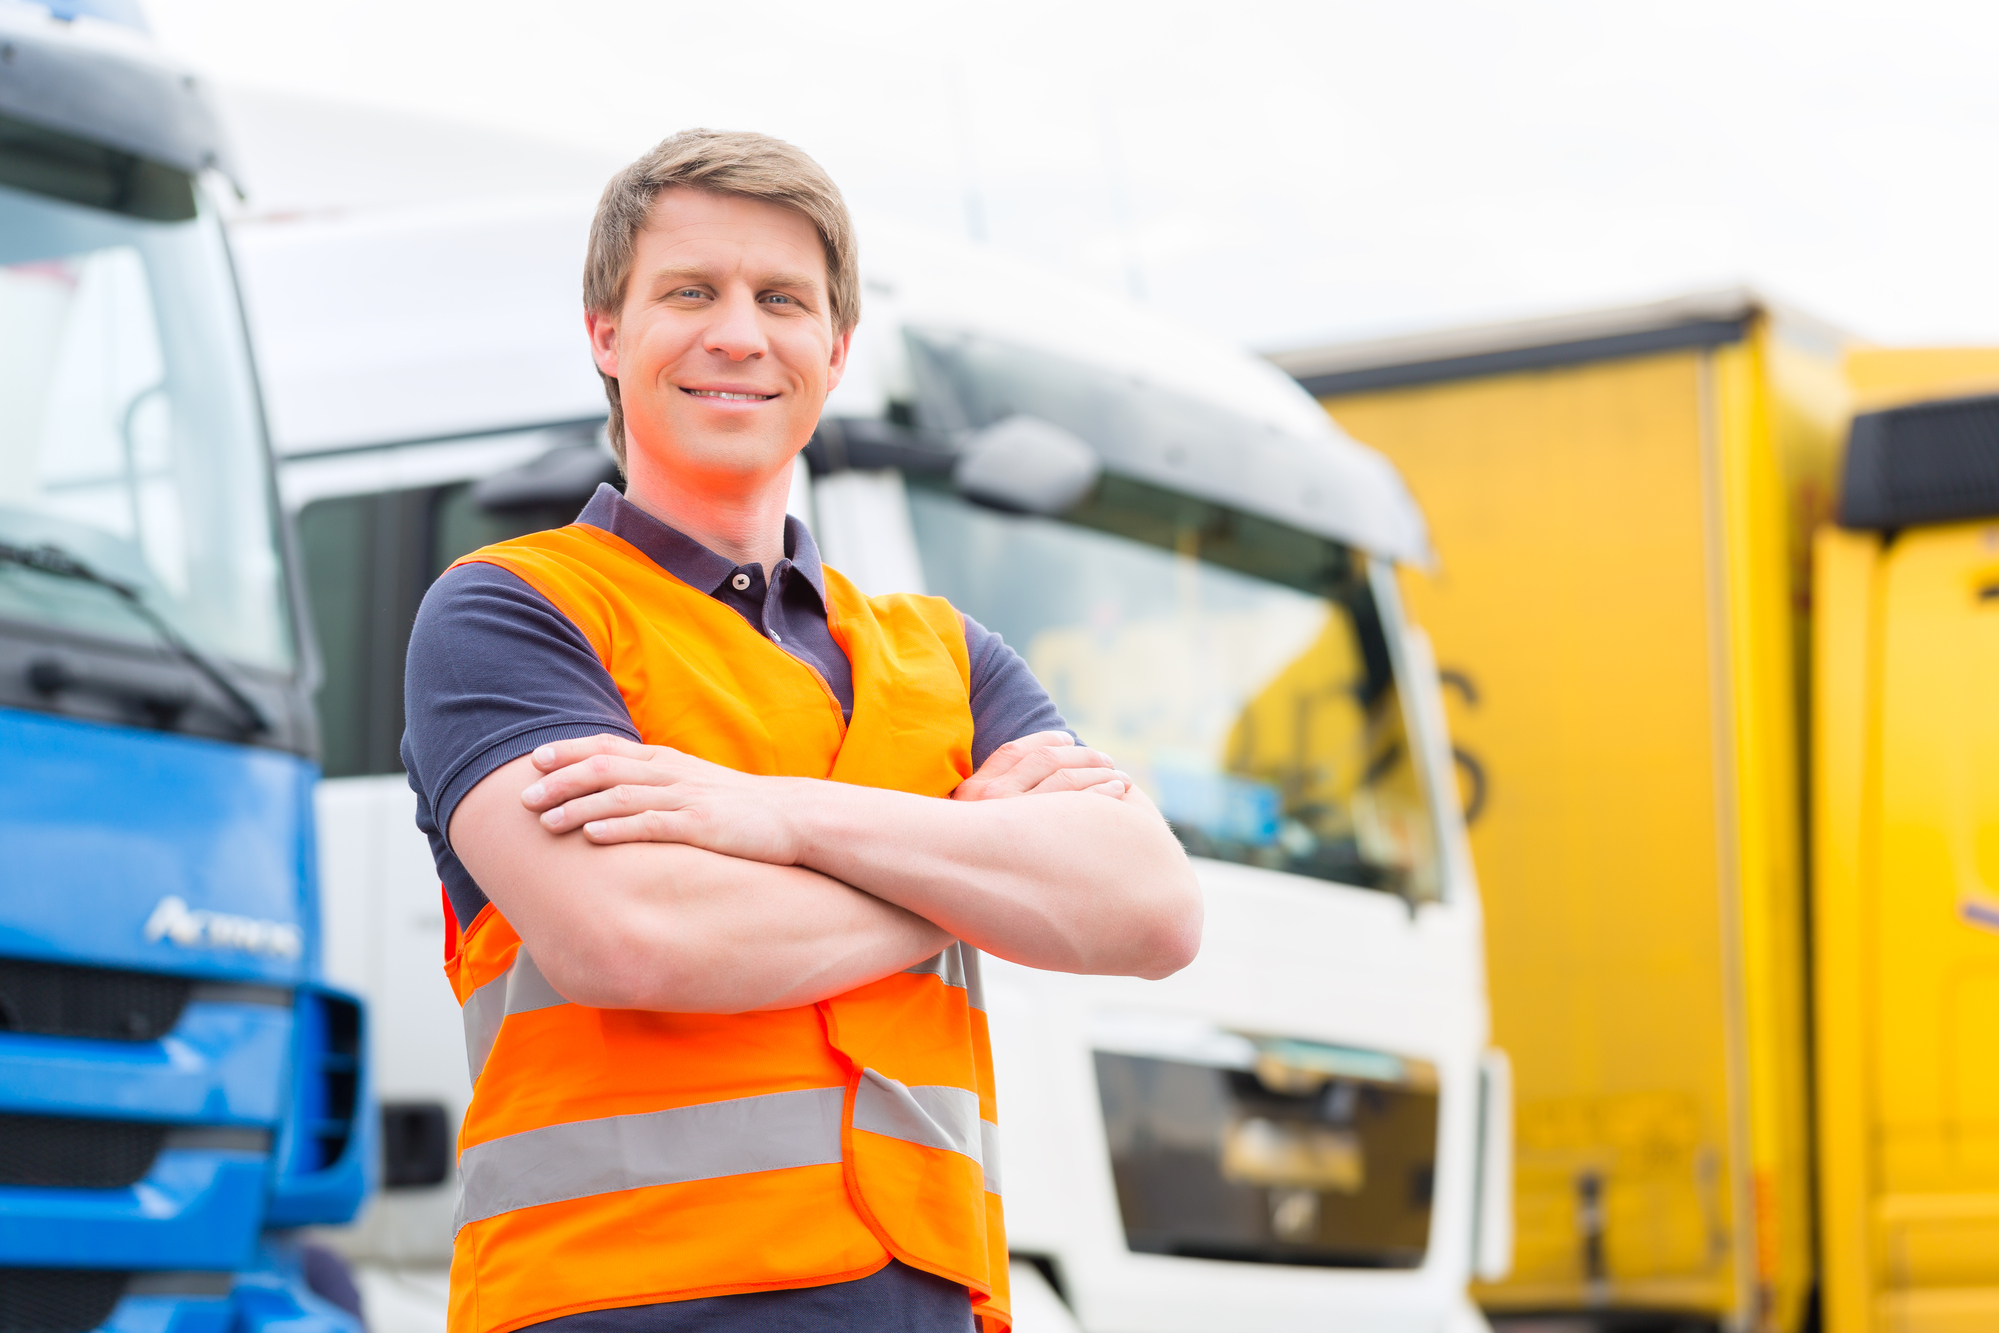 Fleet manager stands in front of trucks